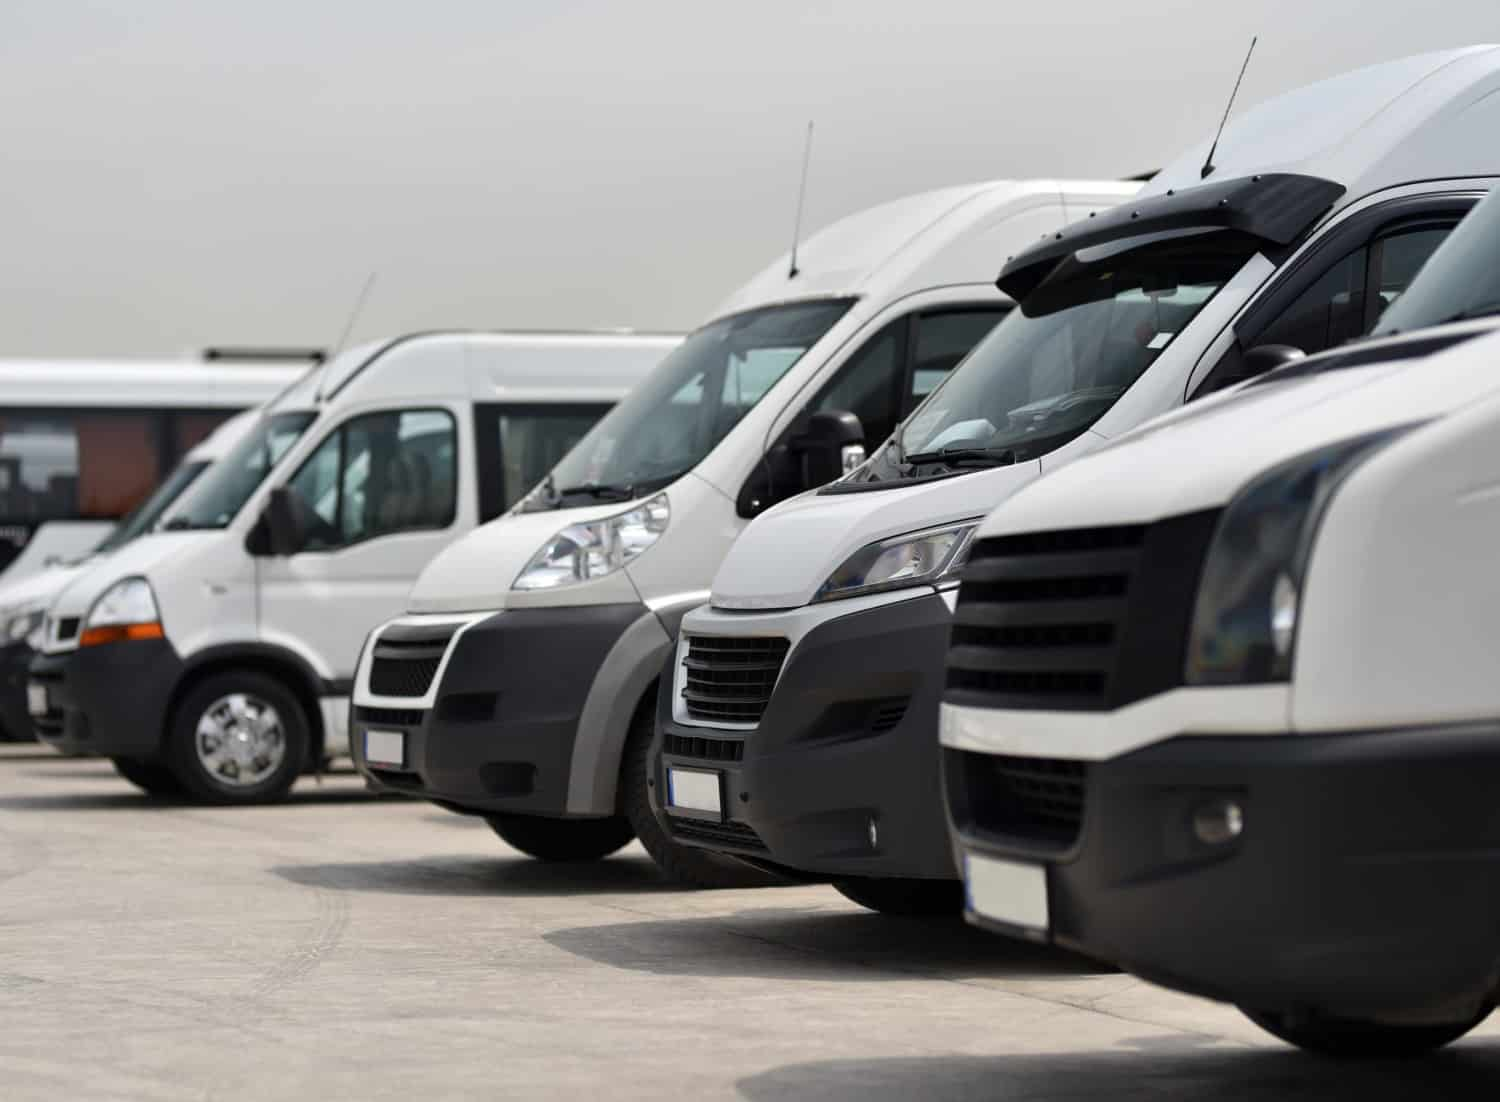 stock-photo-rental-service-of-minibus-and-small-bus-white-microbuses-parked-in-row-1428461072-microbus